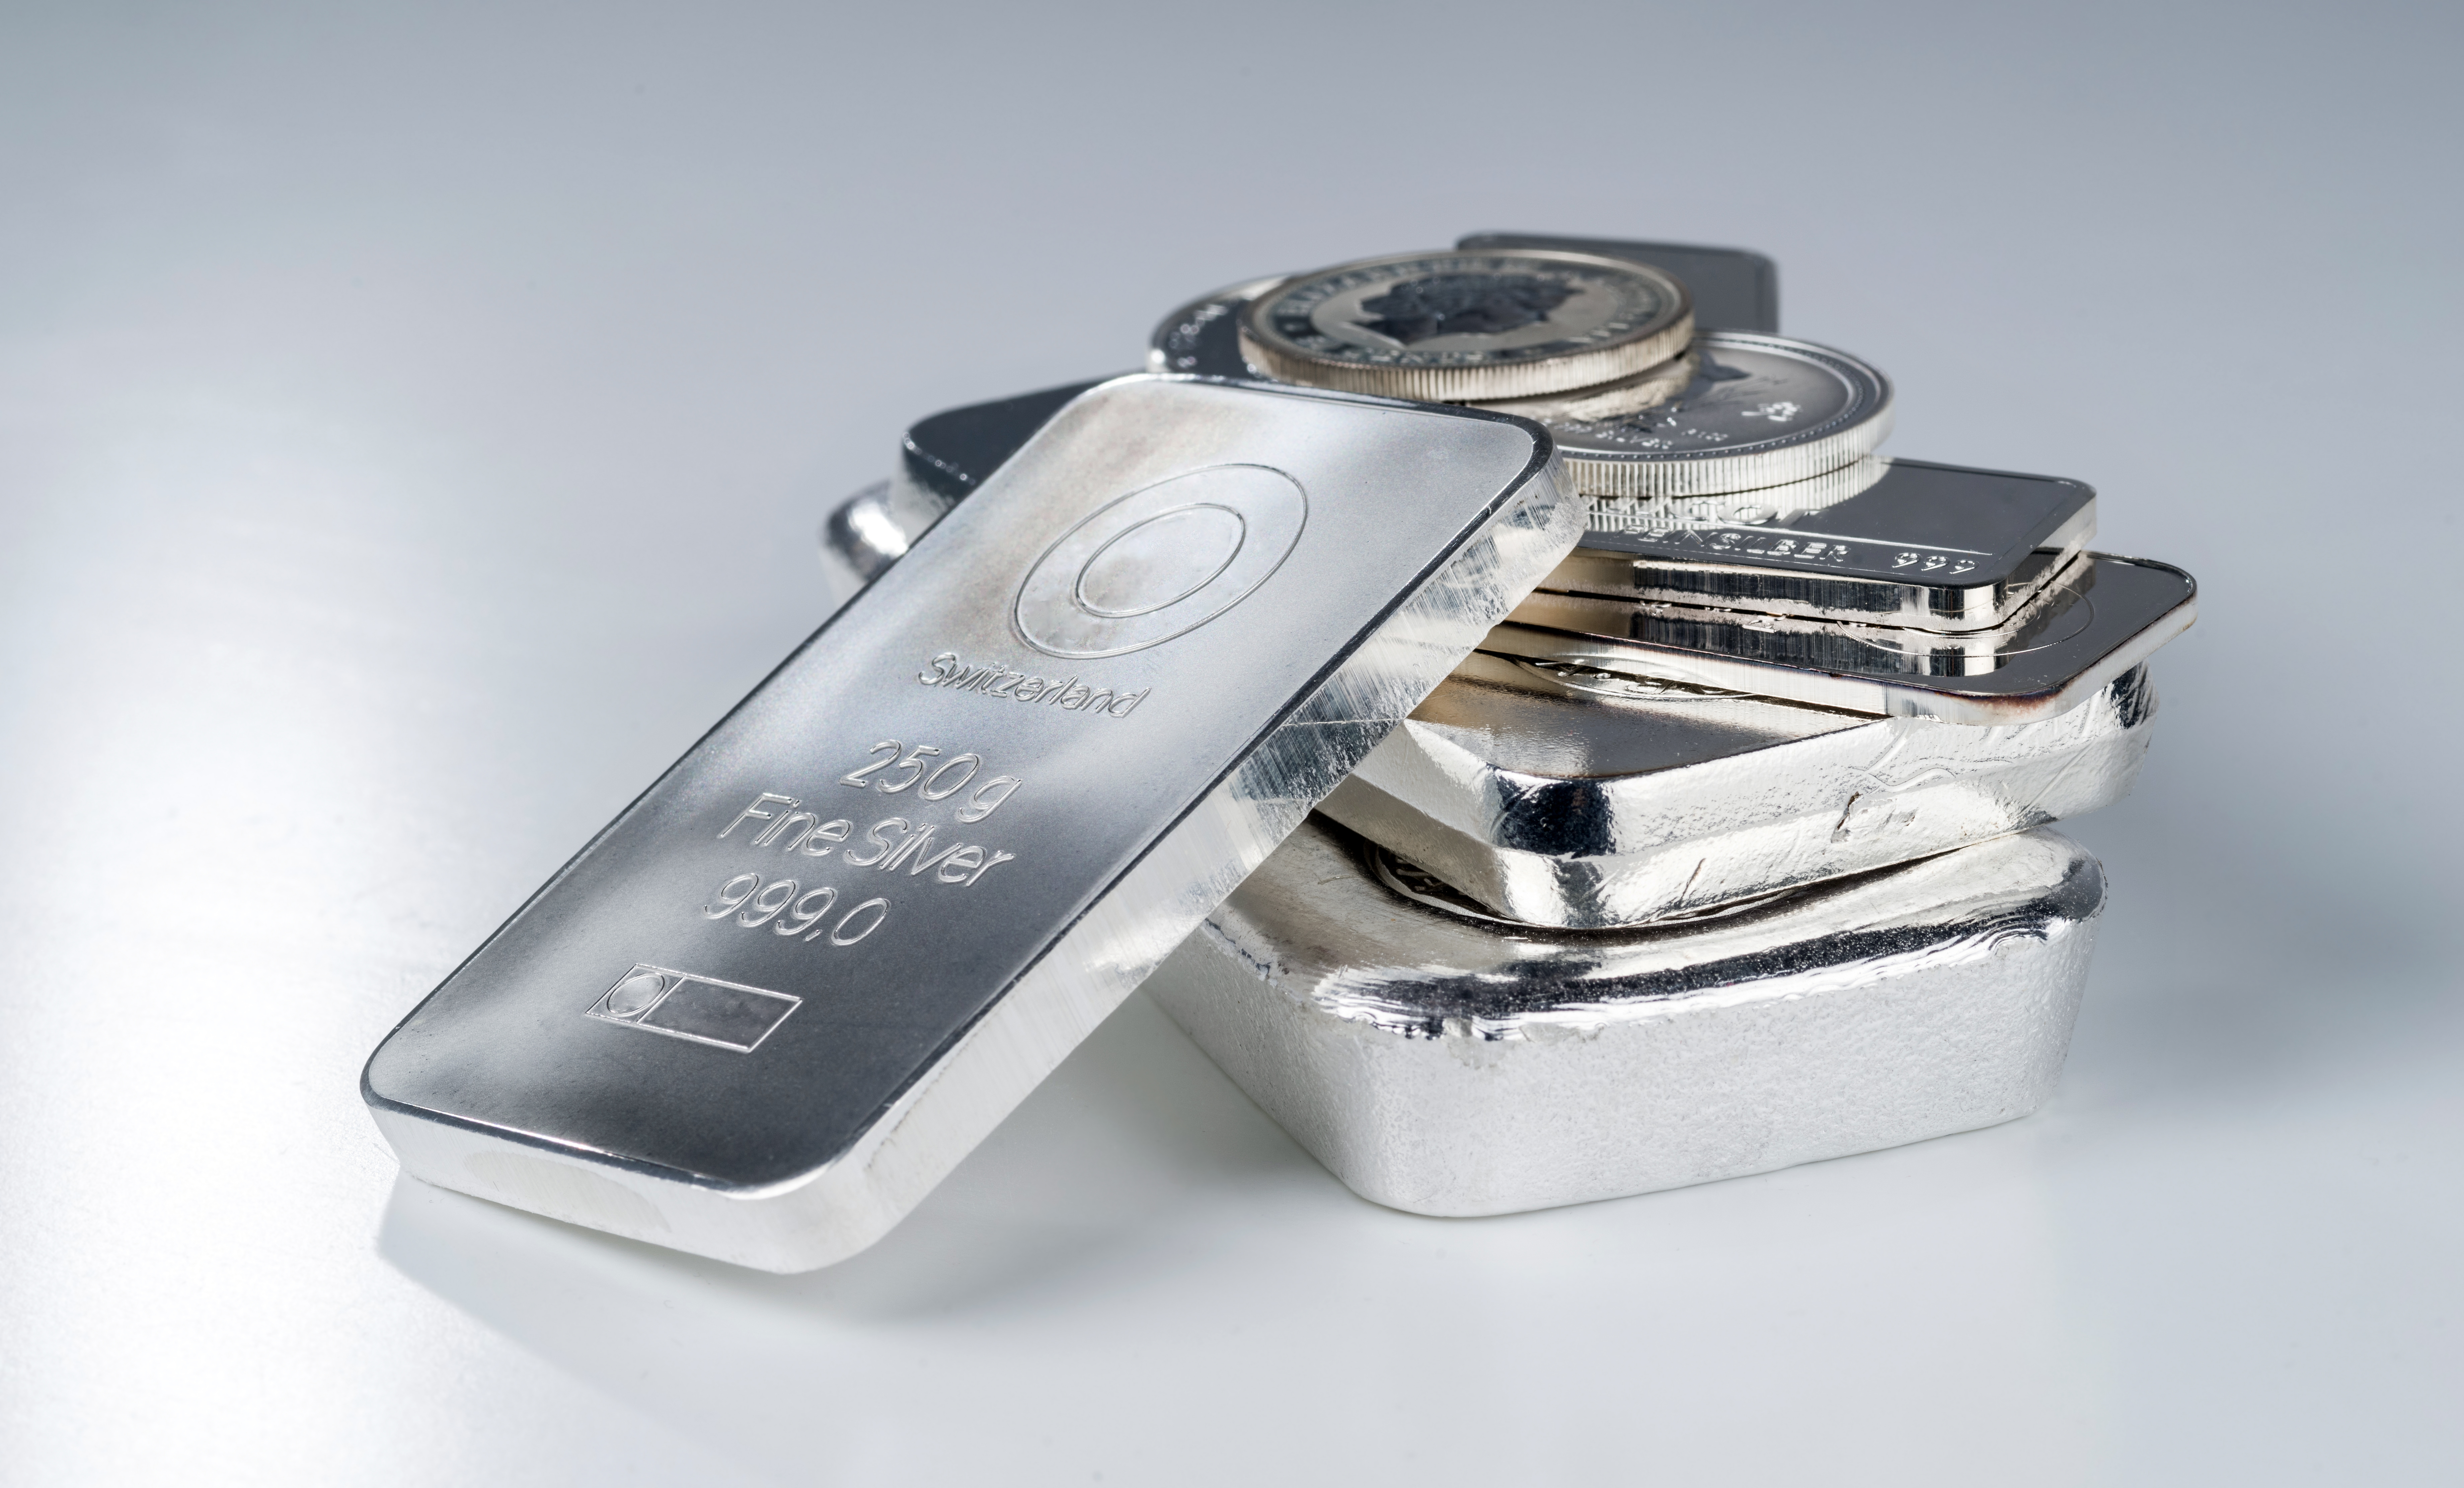 In the Grips of a Currency Crisis, Silver Will Prevail